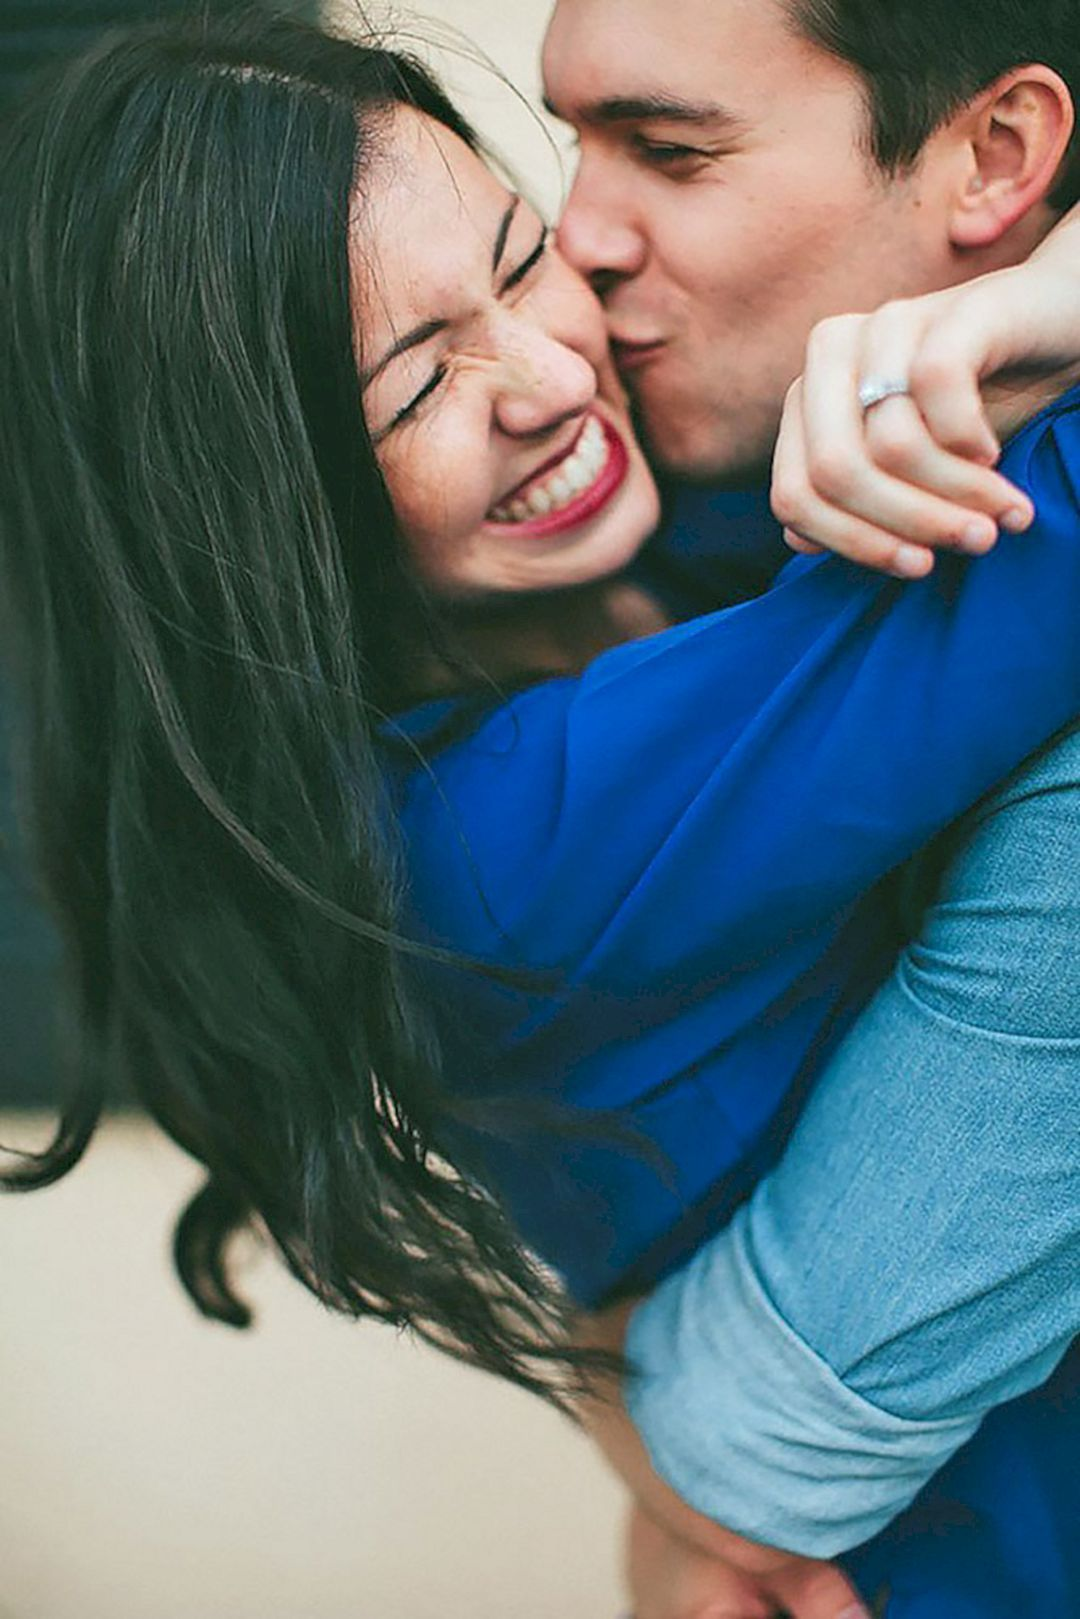 , 55 Best Engagement Poses Inspirations For Sweet Memories 020, Travel Couple, Travel Couple